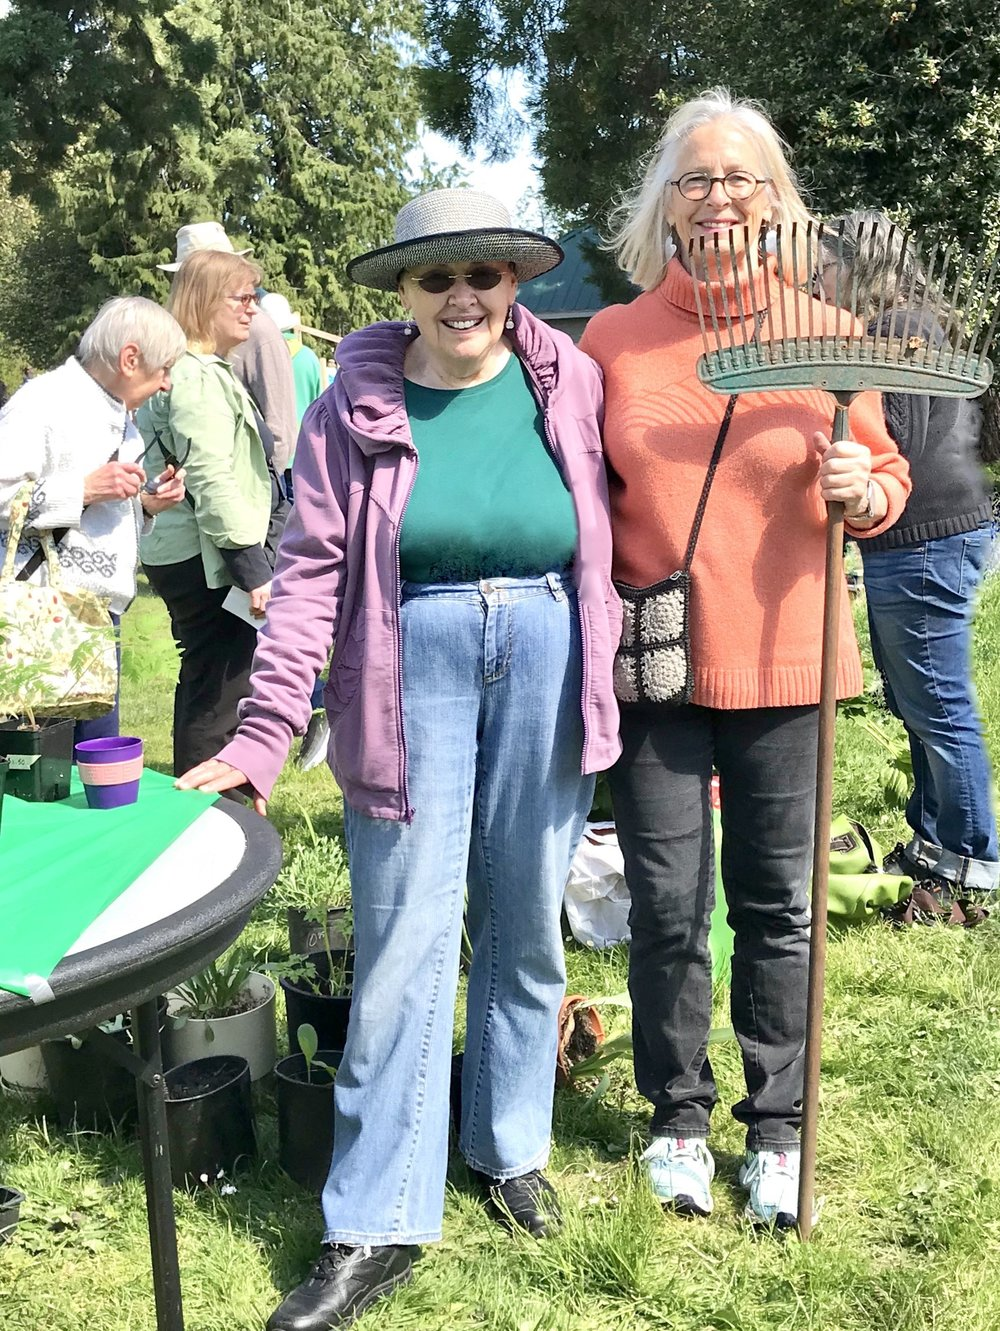 Sunny weather at Irving Park made a successful day at the James Bay Neighbourhood Association Garden Committee's Annual Spring Plant Swap & Sale. Garden Committee enthusiastic volunteers Dorothy Rich and Pat McGuire    Photo by Marion Yas